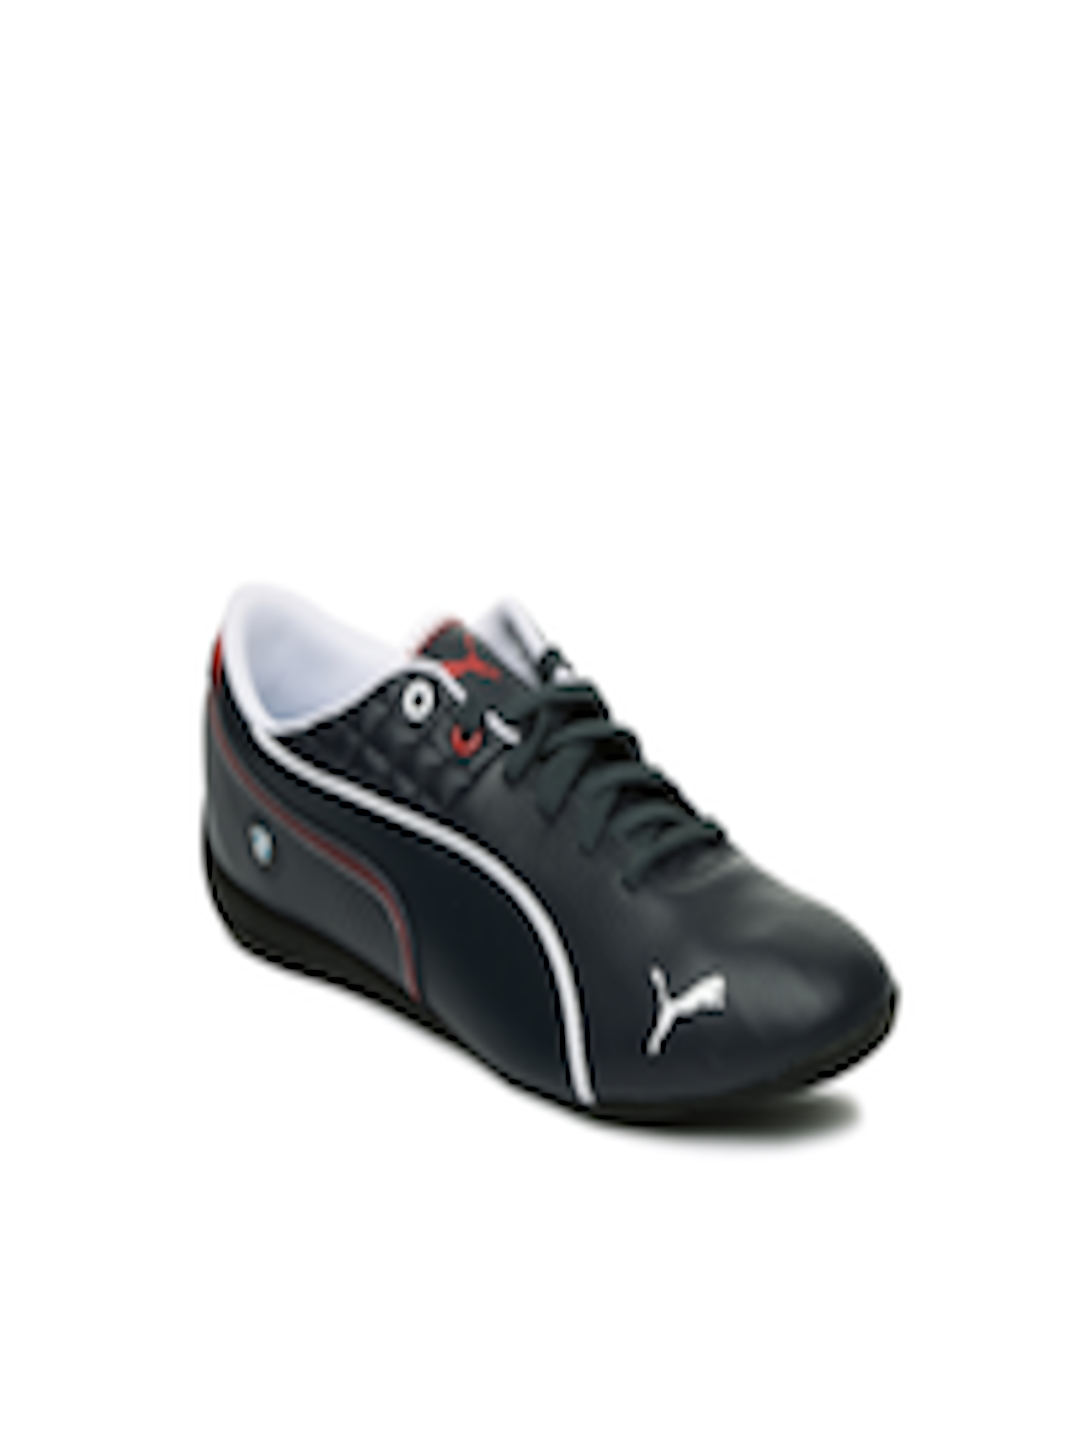 29ea804162c2 Buy PUMA Kids Navy Drift Cat 6 L BMW Casual Shoes - Casual Shoes for Unisex  740161